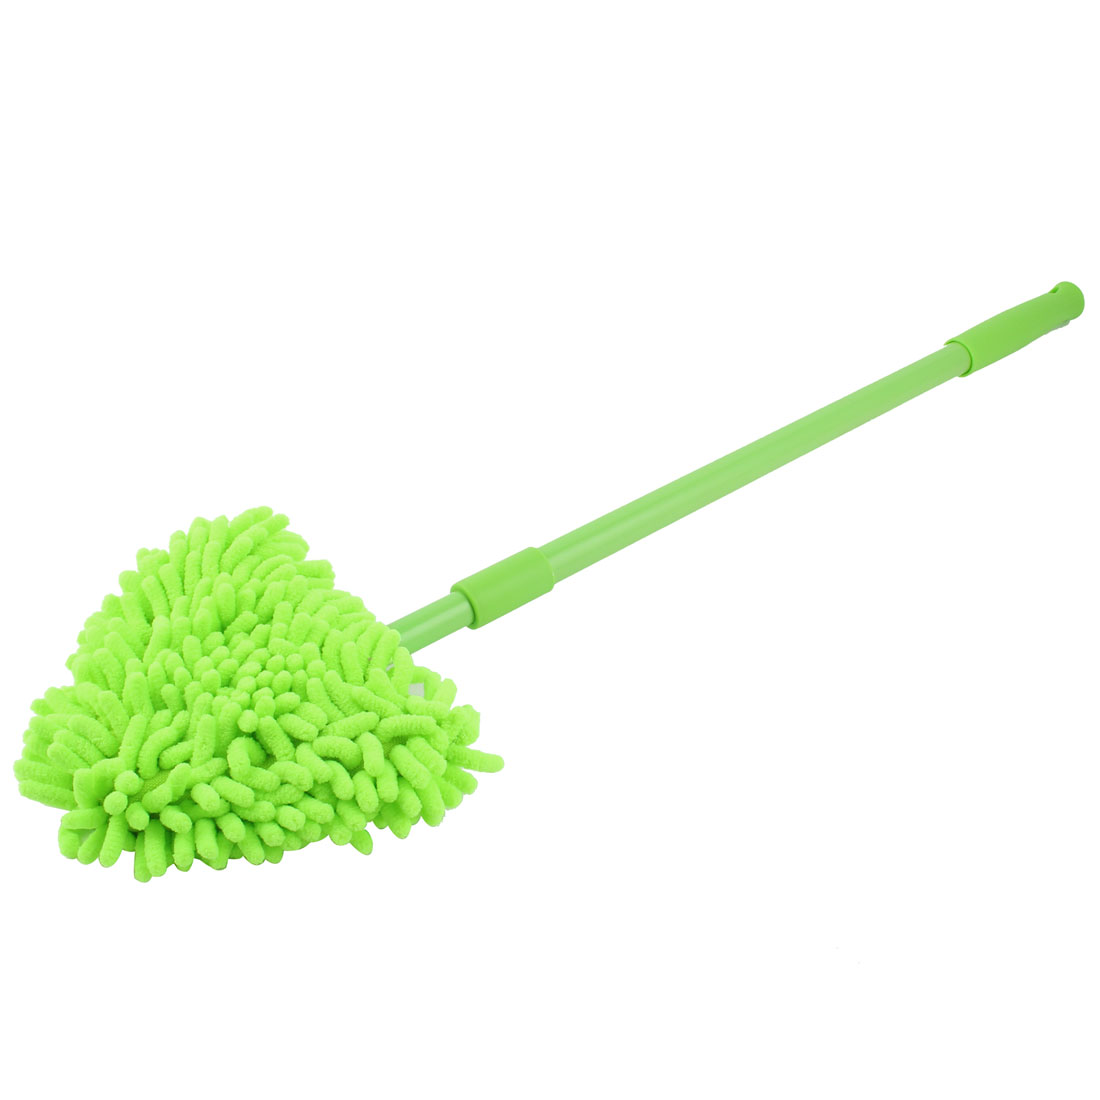 Plastic Handle Cotton Blends Top Household Stretchable Floor Cleaning Brush